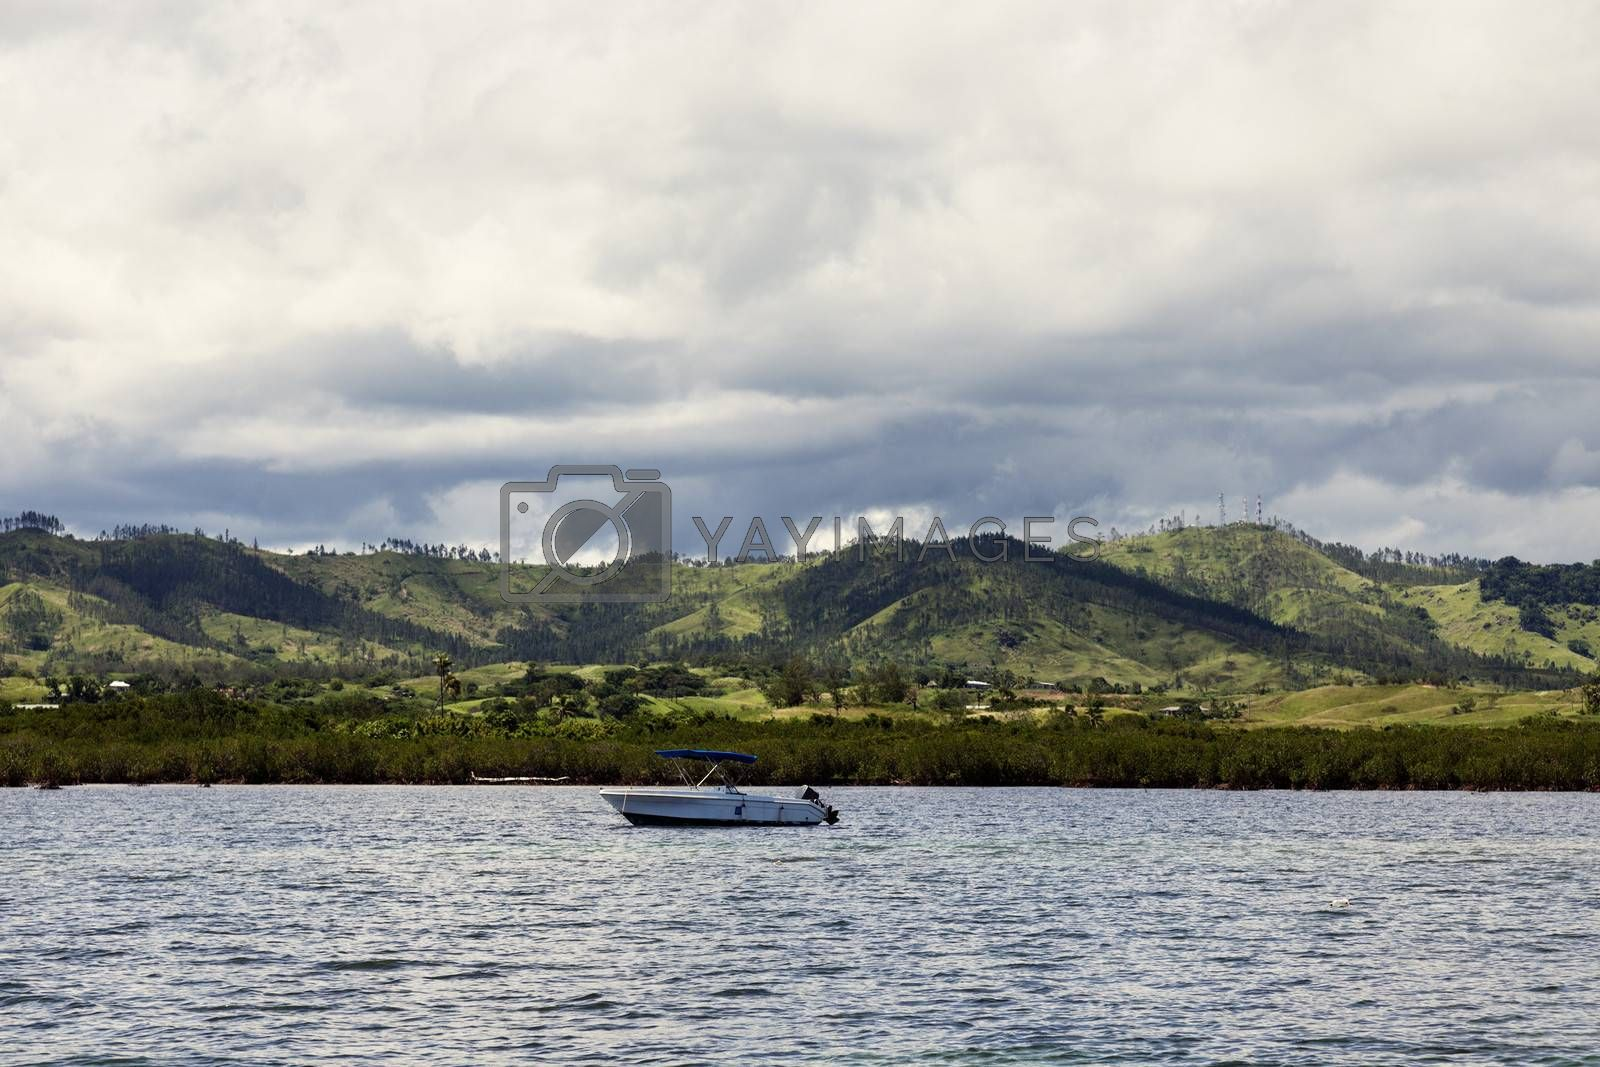 Royalty free image of Fiji from the ocean by benkrut